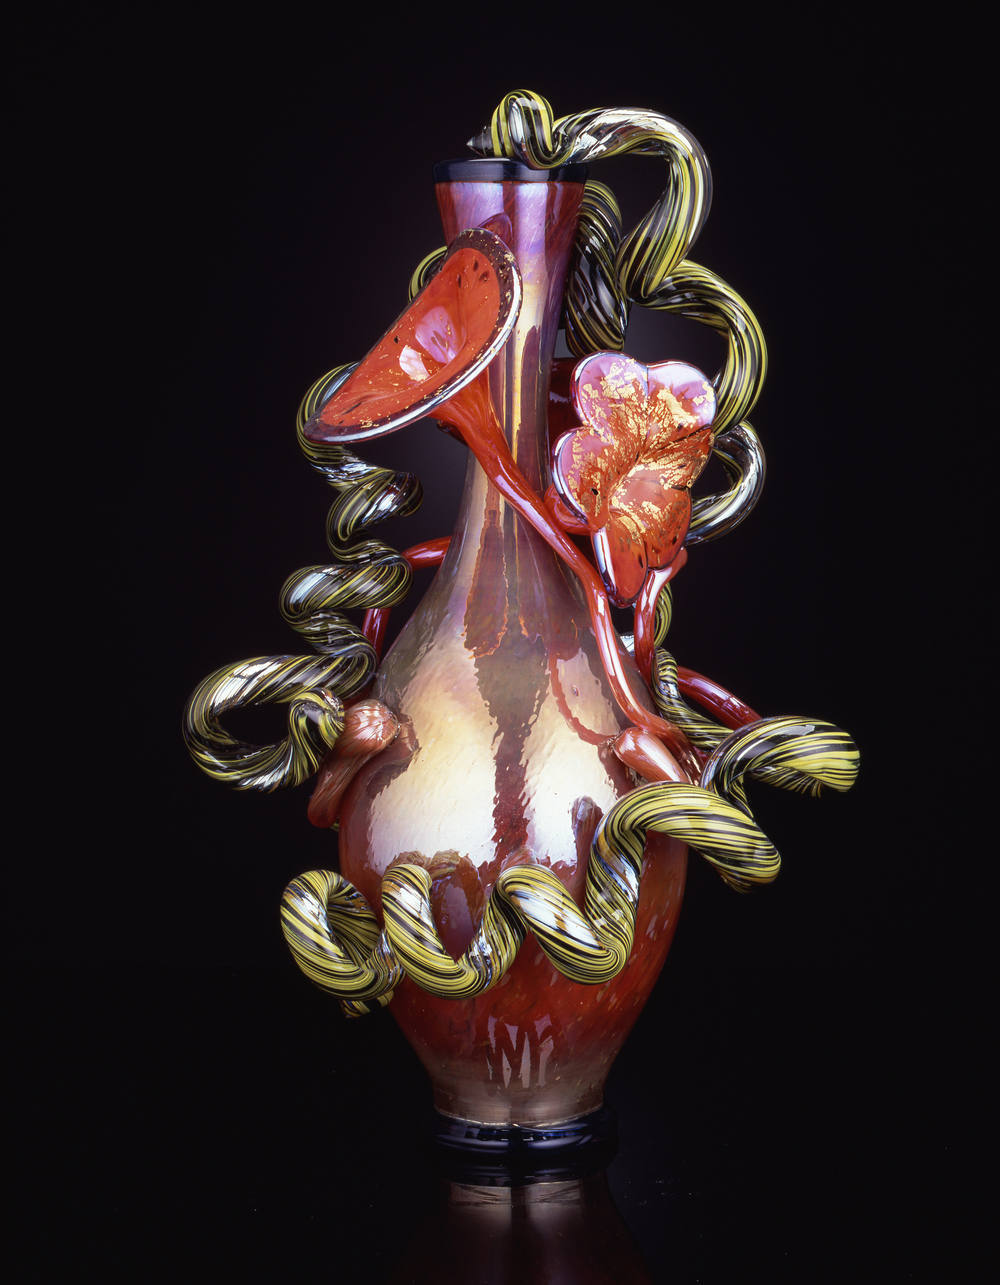 Dale Chihuly,  Iridescent Orange Venetian  (1990, glass, 24 x 14 x 14 inches)